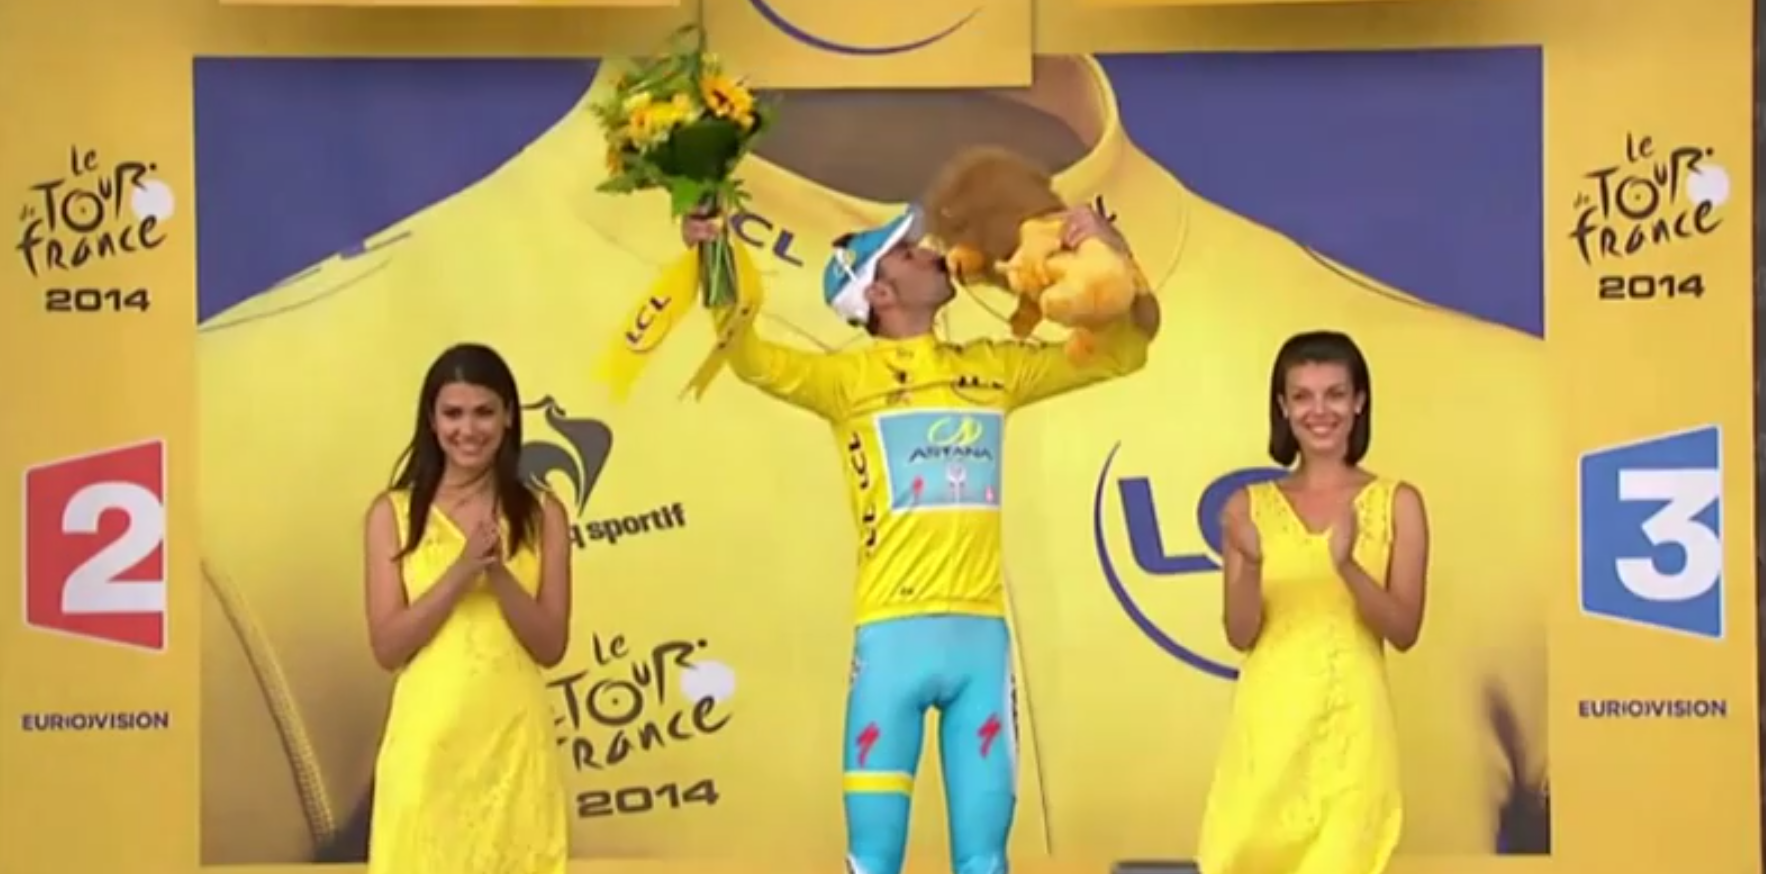 Tour de France stage two winner Vincenzo Nibali settles for kissing a plush lion after a podium woman declined his polite kiss